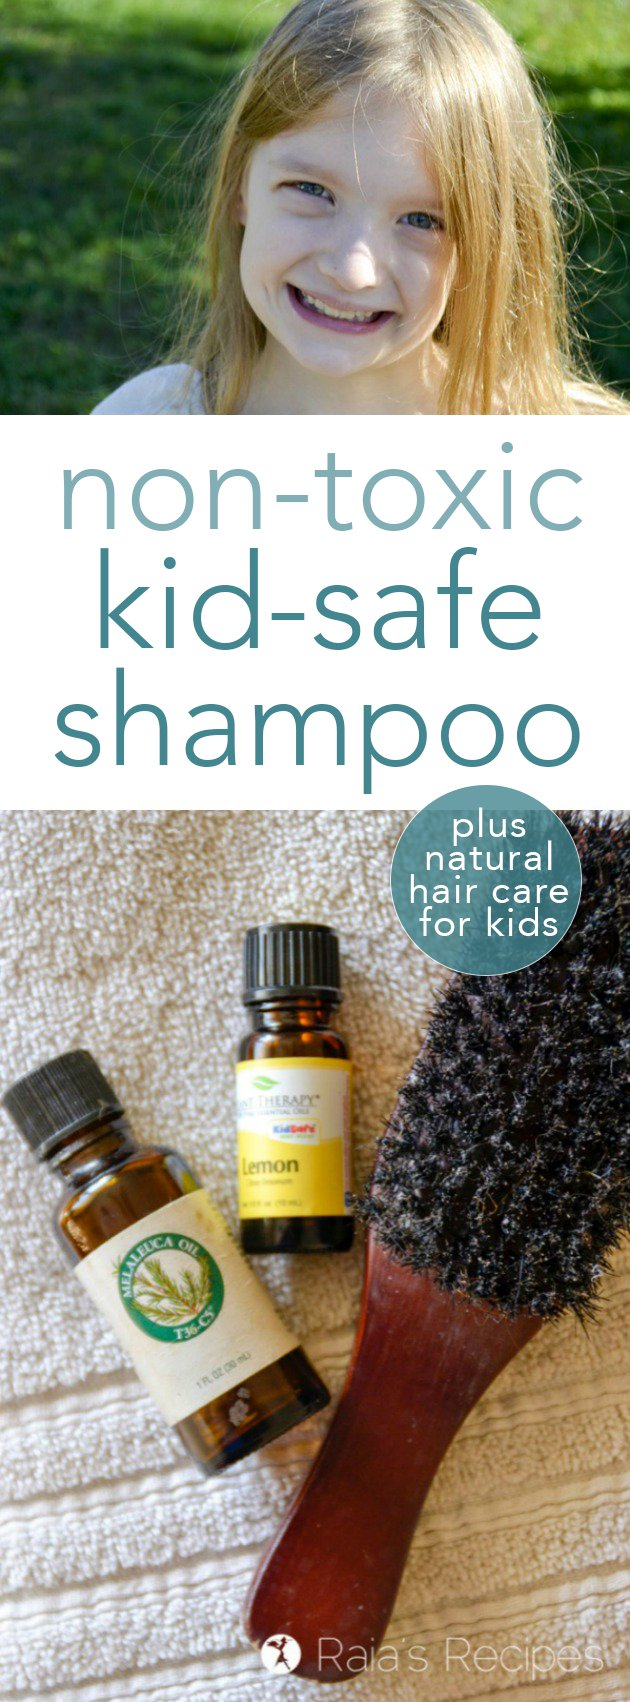 Want to keep your kids scalp and skin safe from unnecessary toxins? Here's what I dofor non-toxic hair care for kids, as well as a kid-safe shampoo recipe that's easy to make yourself! #DIY #shampoo #nontoxic #kidsafe #essentialoils